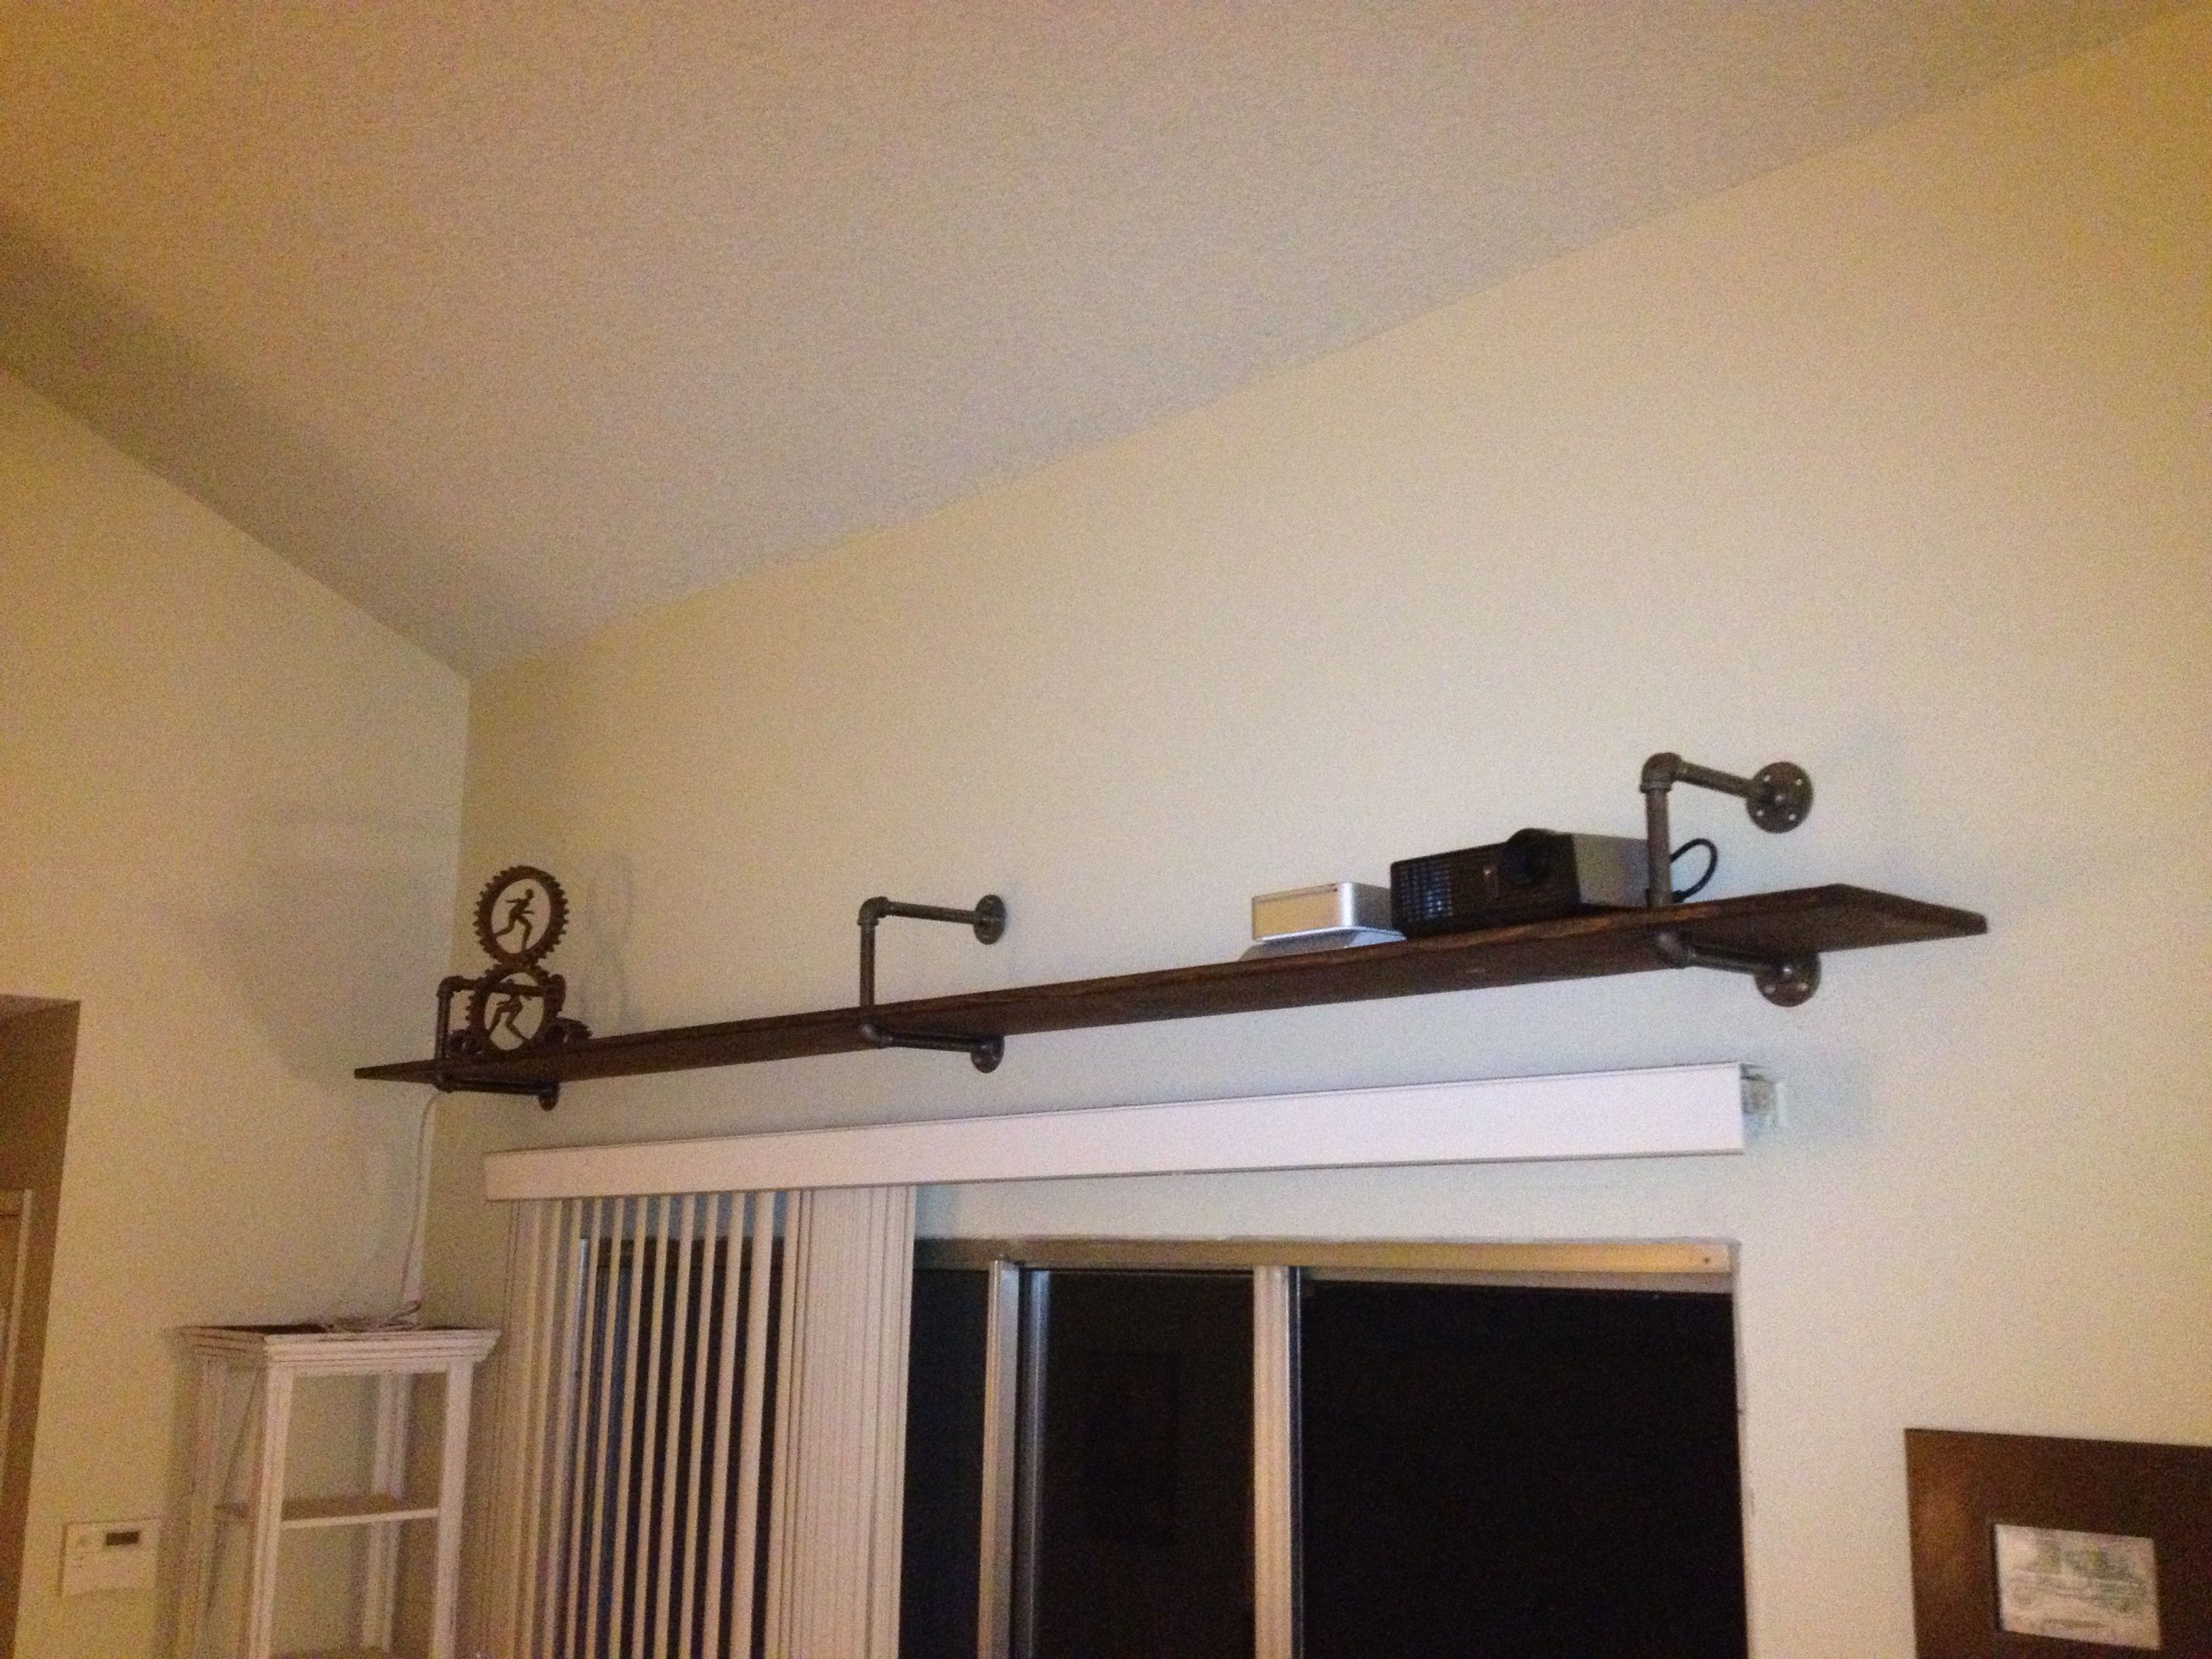 Elevated Shelf Utilizing Galvanized Pipe For Placement